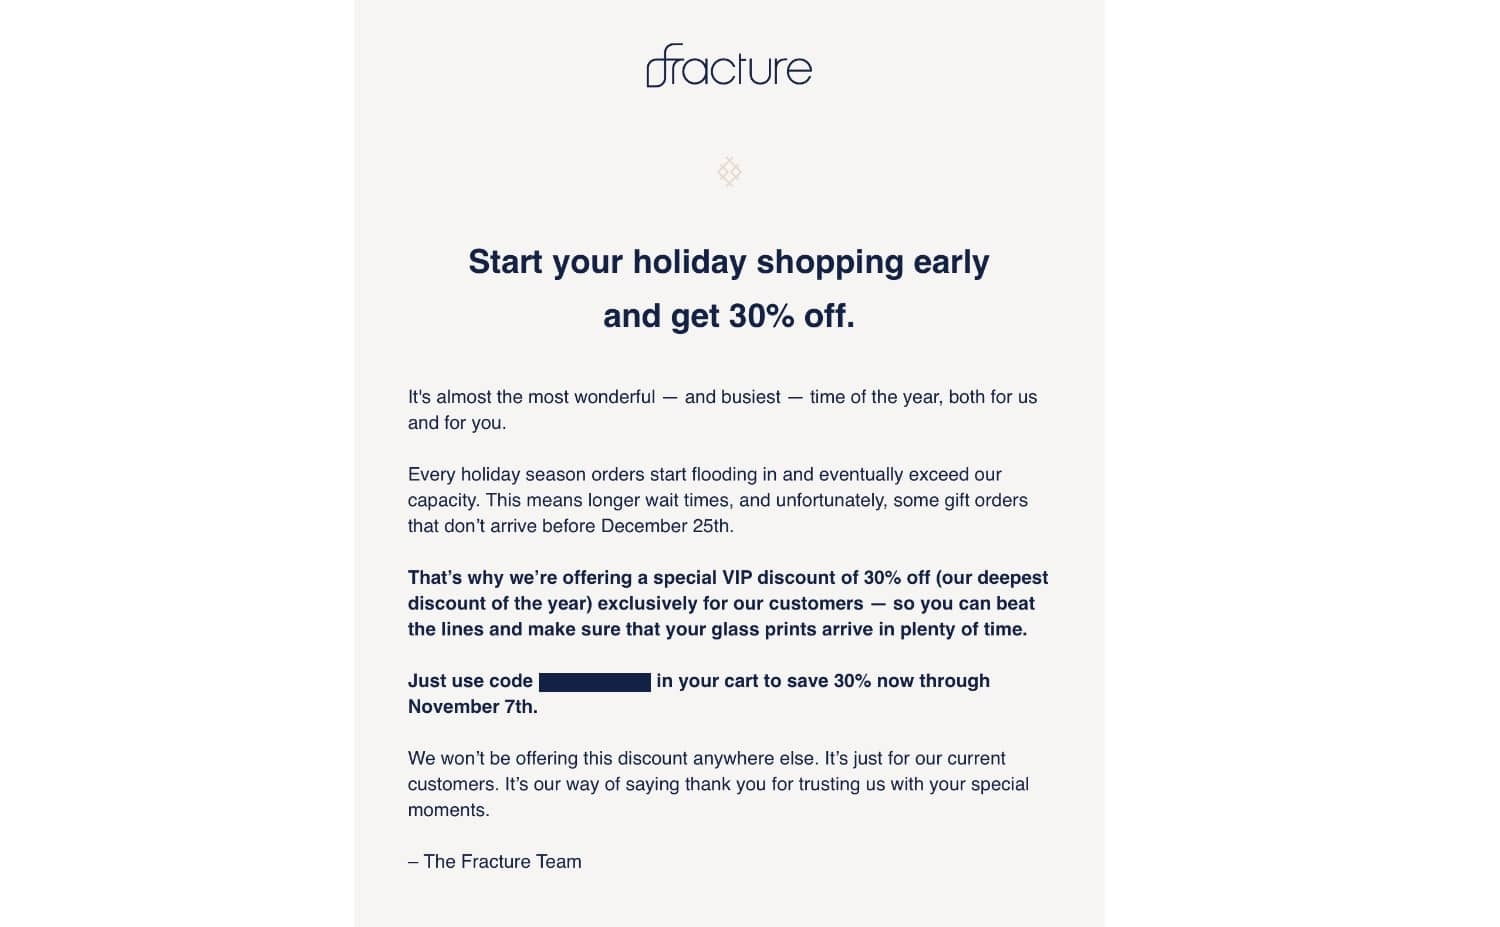 A marketing email from Fracture with a rarely offered discount.